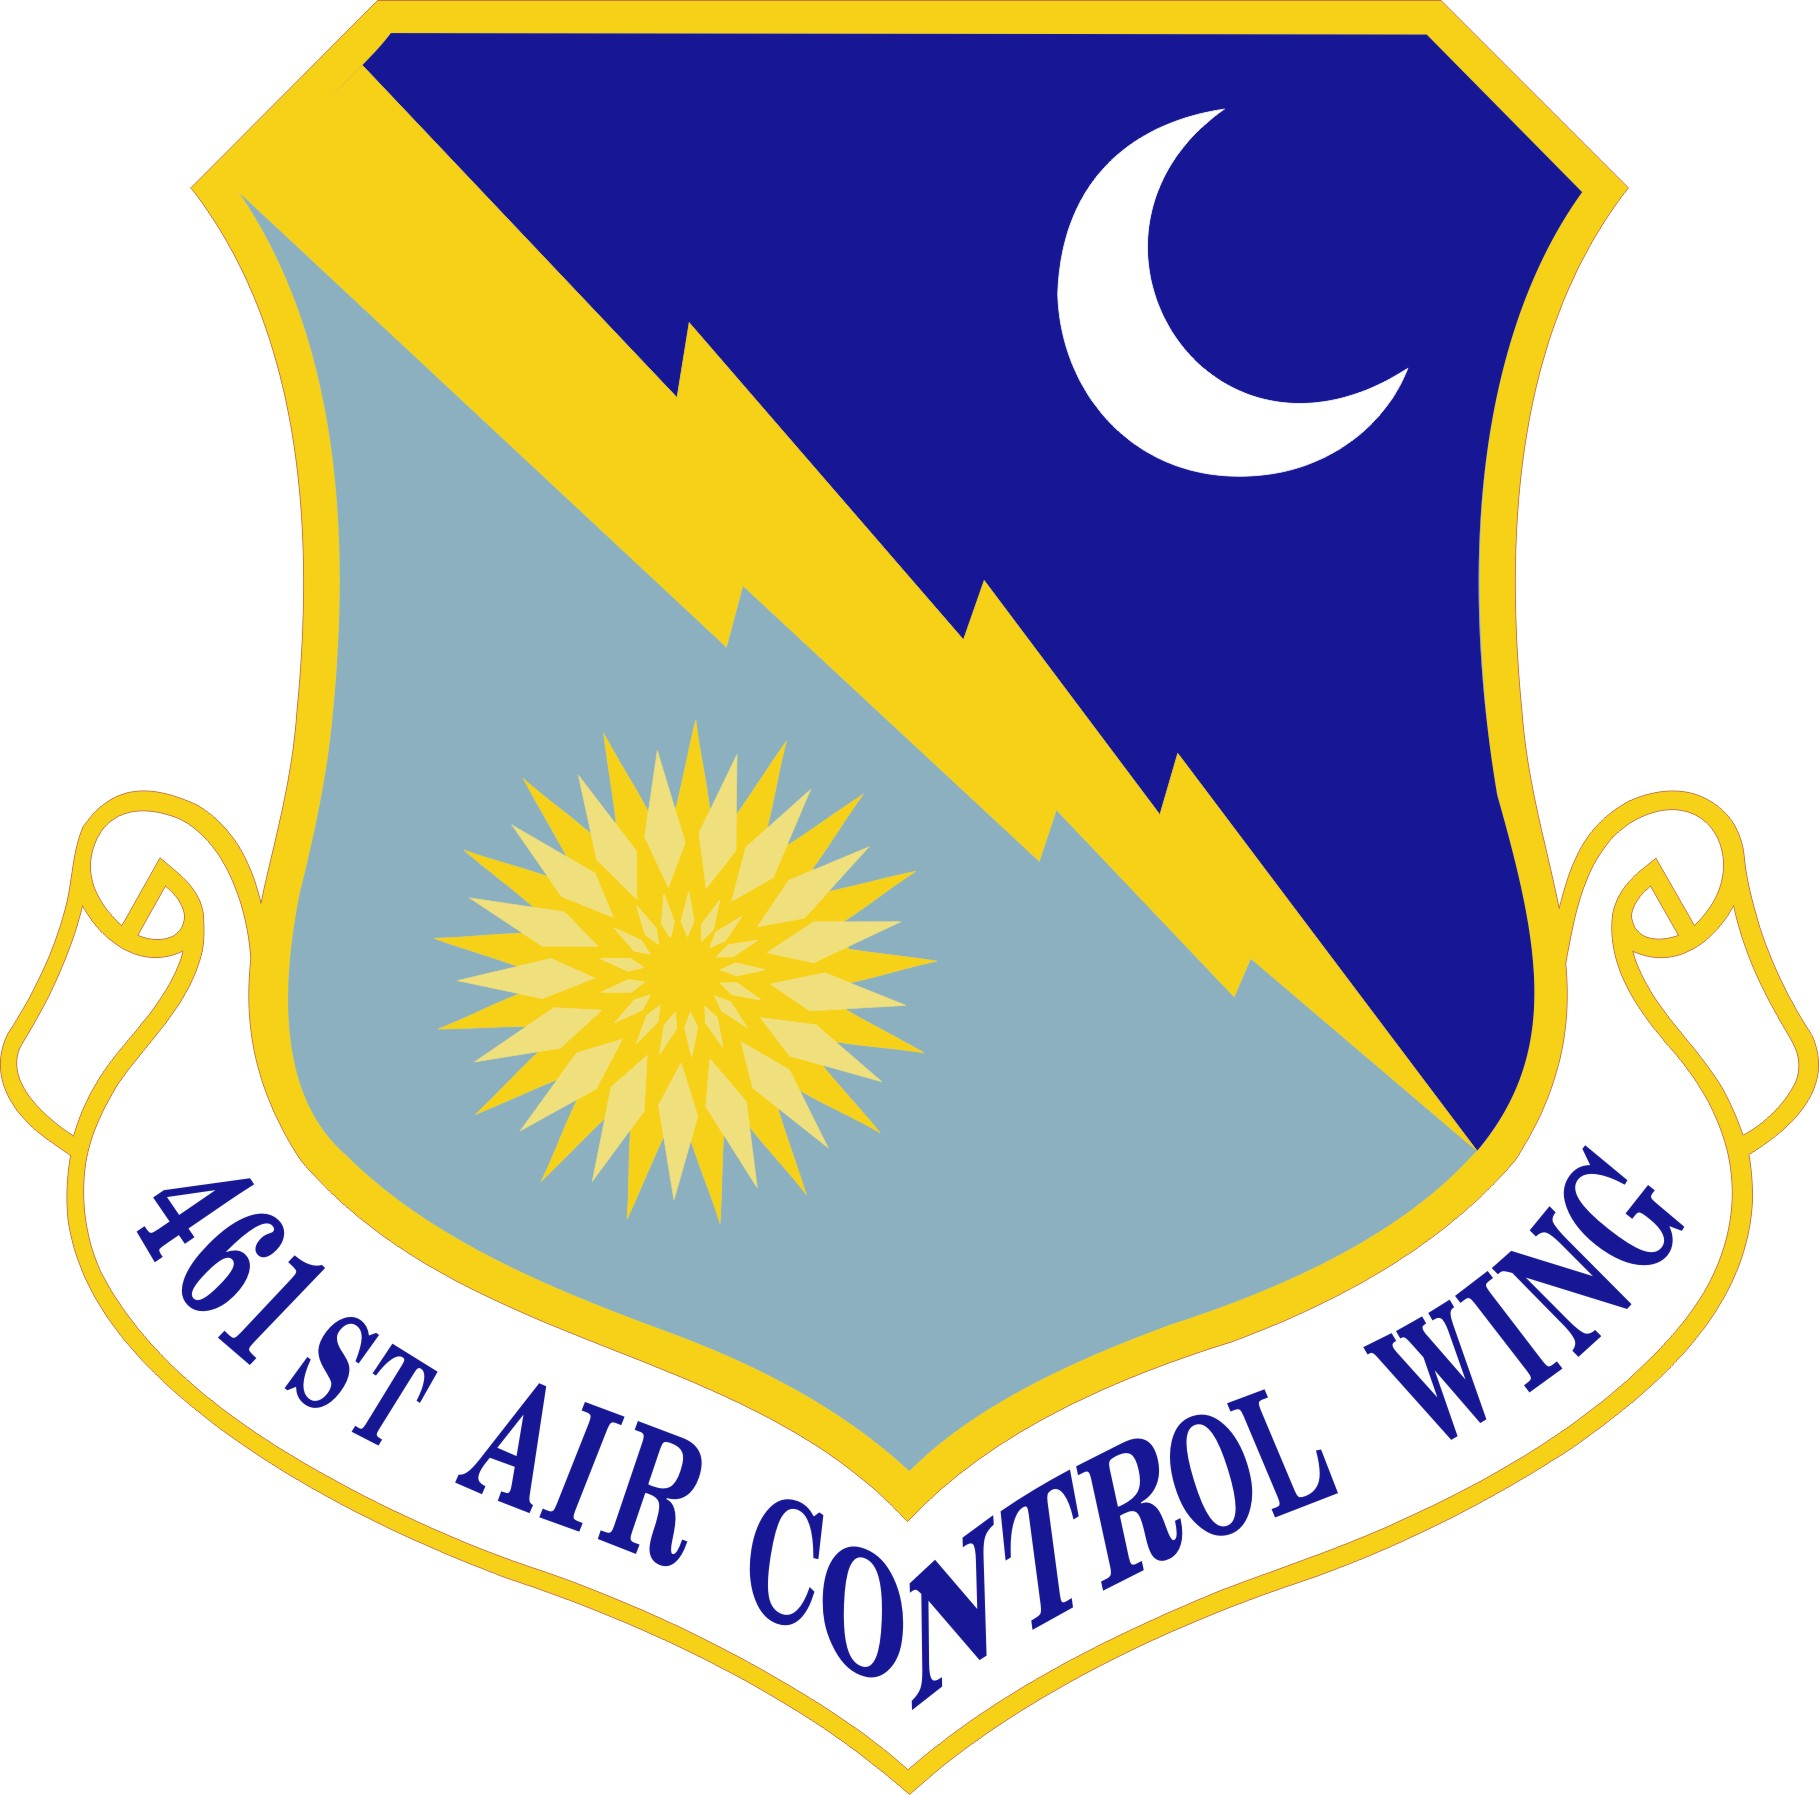 461st Air Control Wing shield